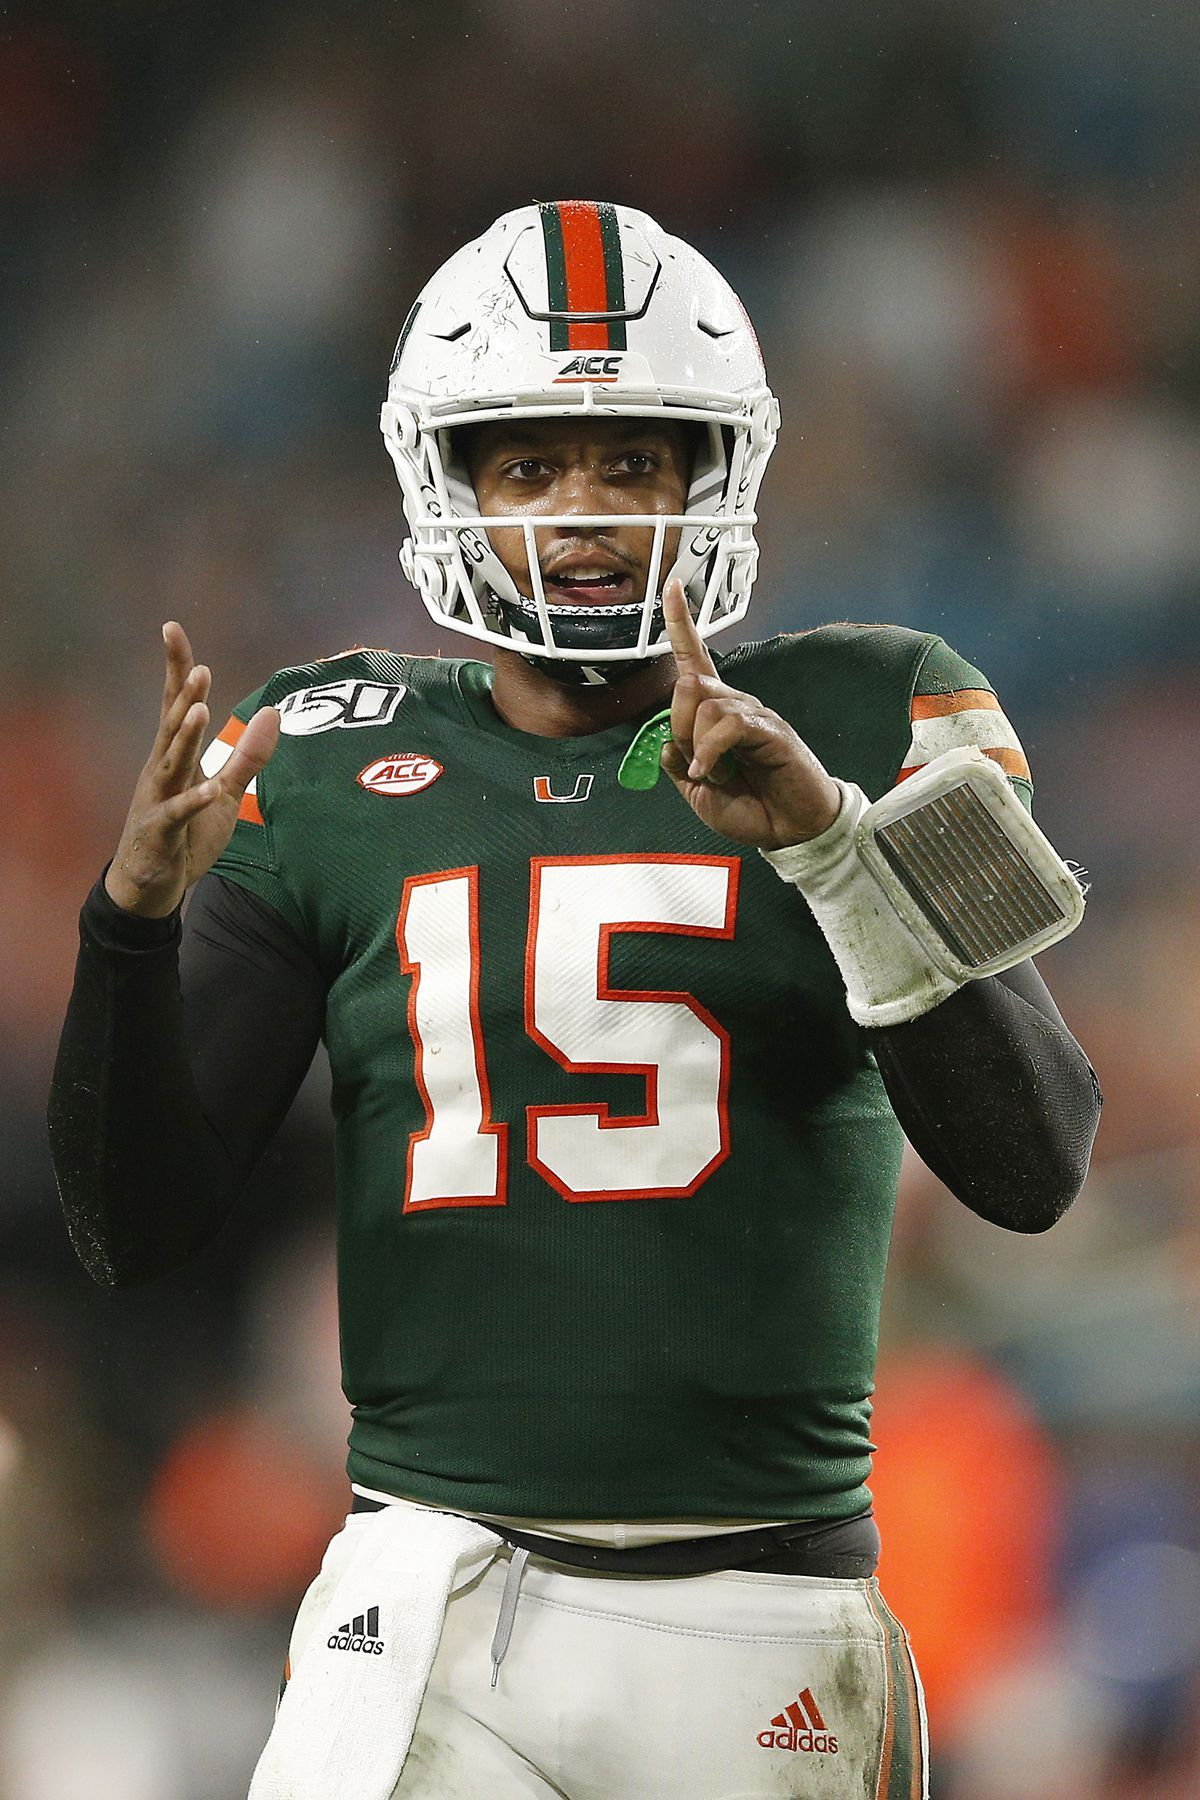 Has The New Miami Found Their Footing State Of The U Is The Perfect High Quality Nfl Superbowl Wallpaper In 2020 Miami Dolphins Wallpaper Super Bowl Nfl Miami Dolphins